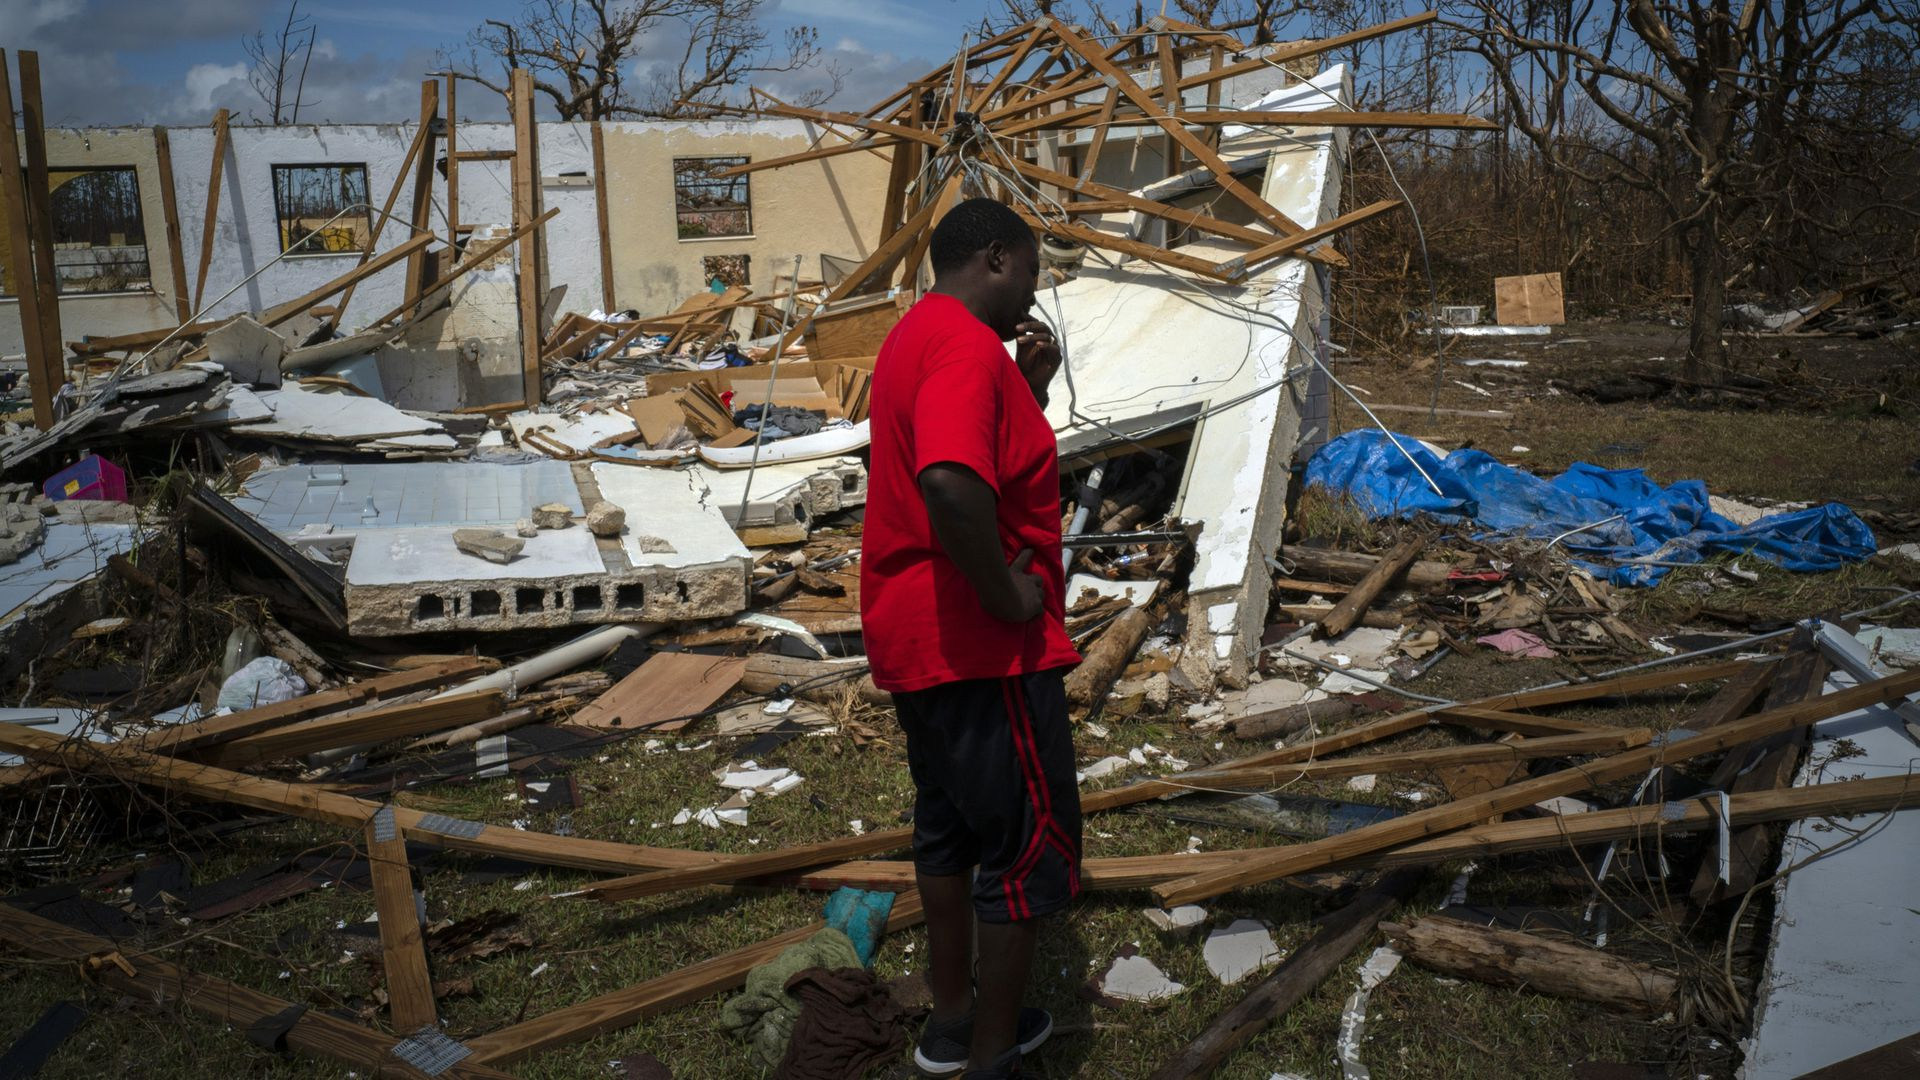 A man cries at the sight of his destroyed house in the Bahamas